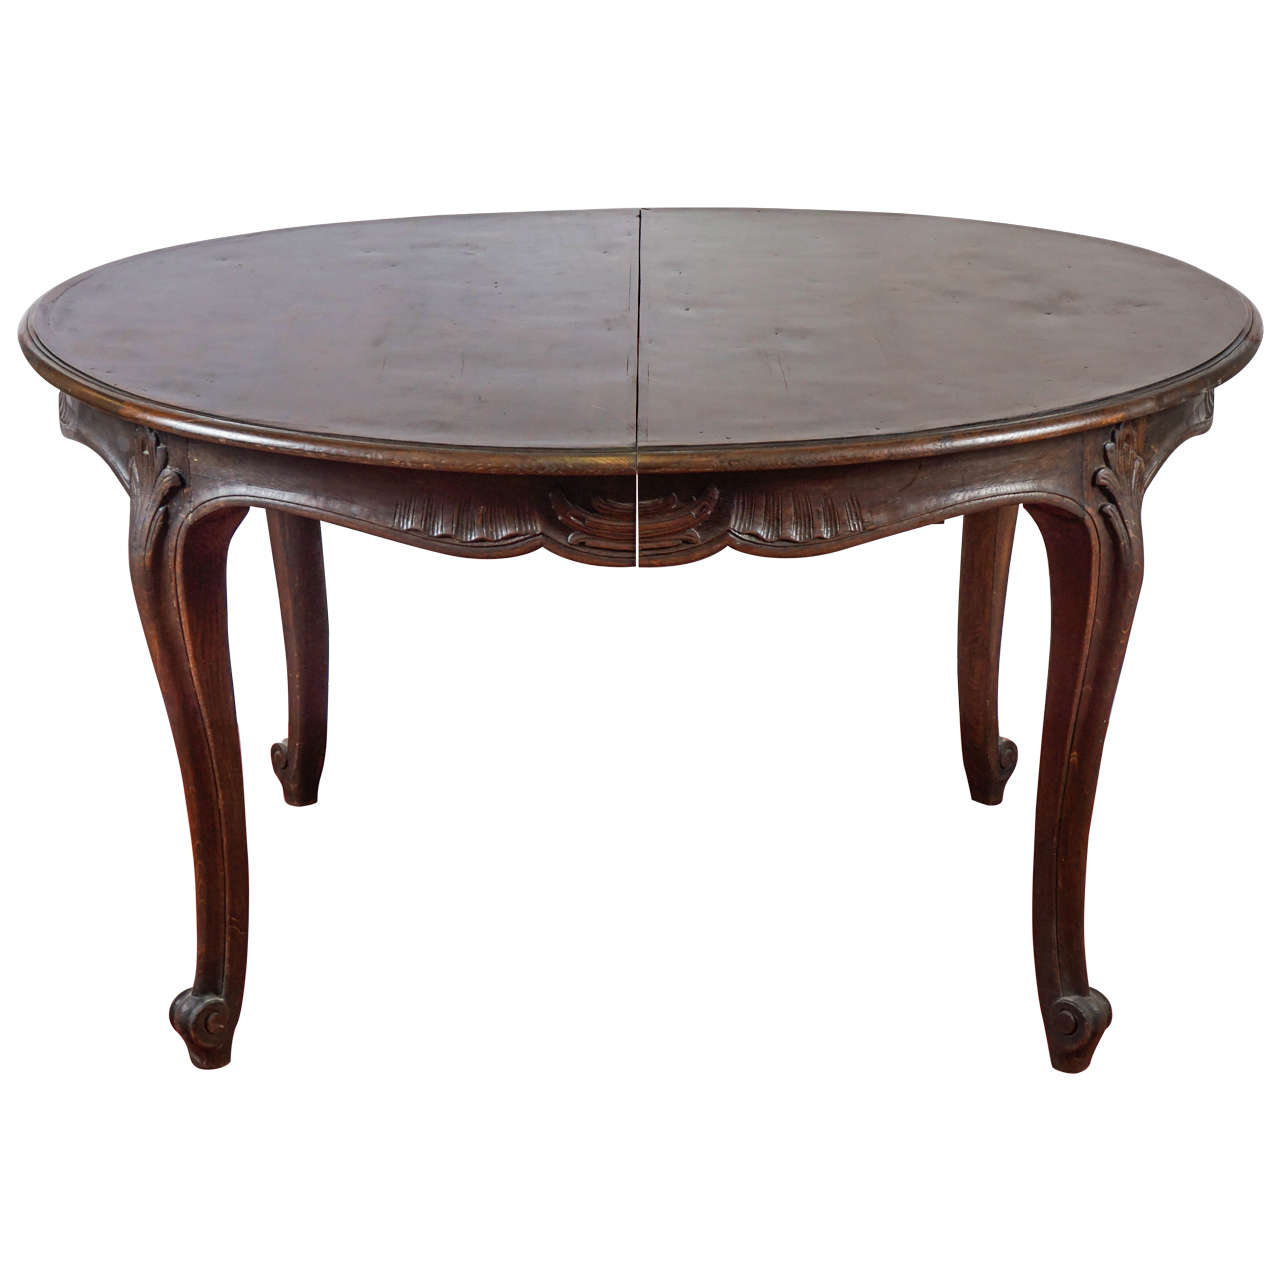 Louis Xv Style Oval Dining Table For Sale At 1stdibs